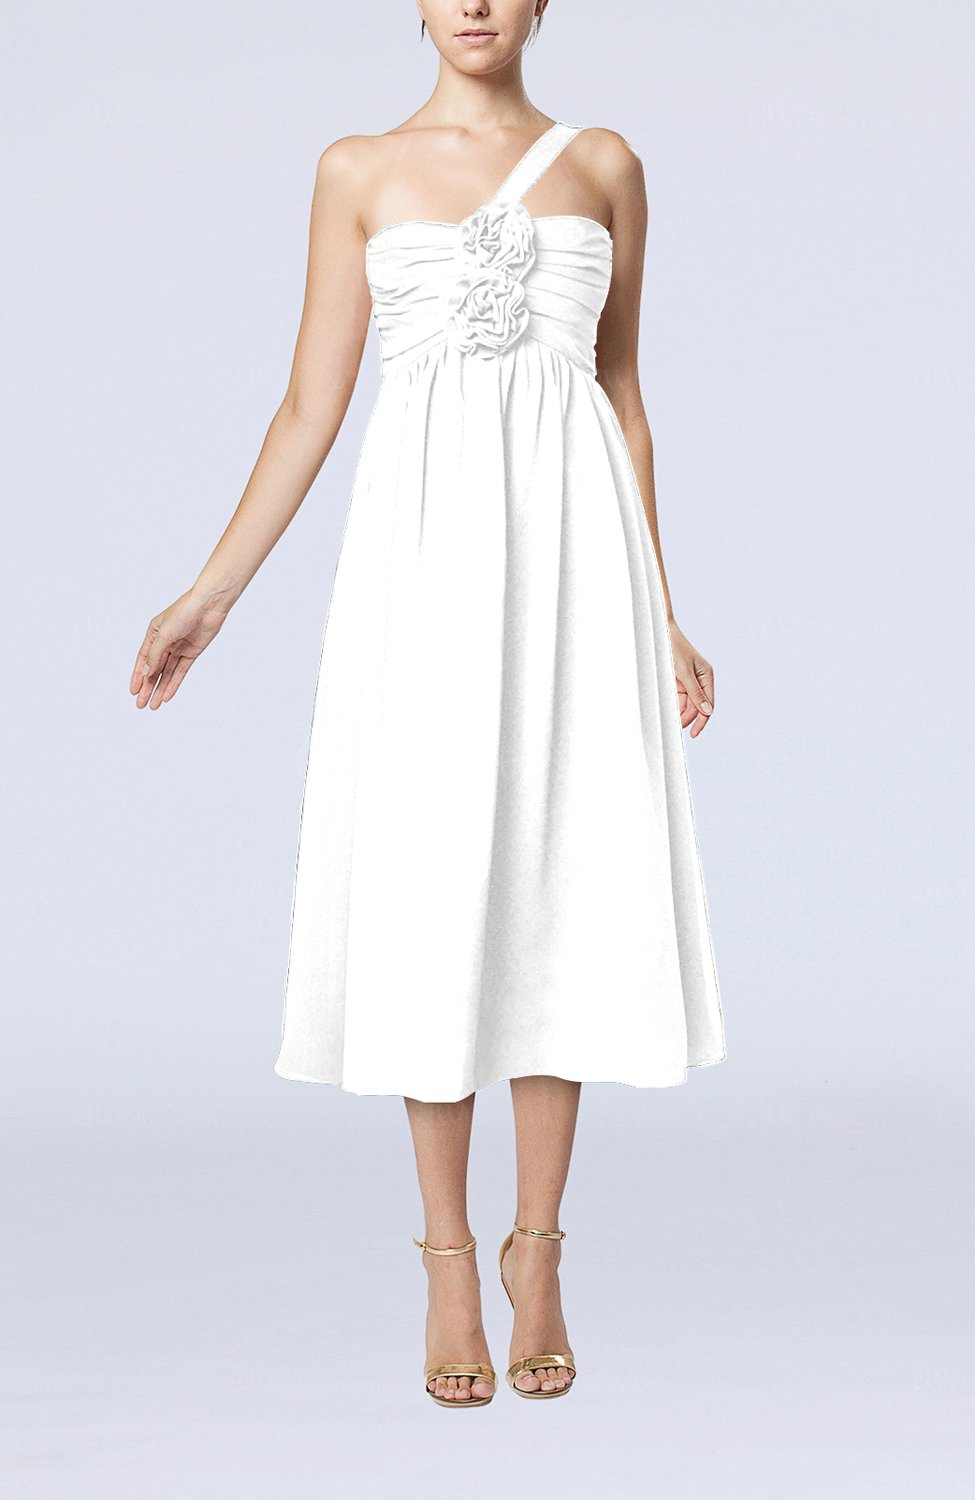 a052c931382 Cloud White Casual One Shoulder Sleeveless Chiffon Pleated Wedding Guest  Dresses (Style D57627)